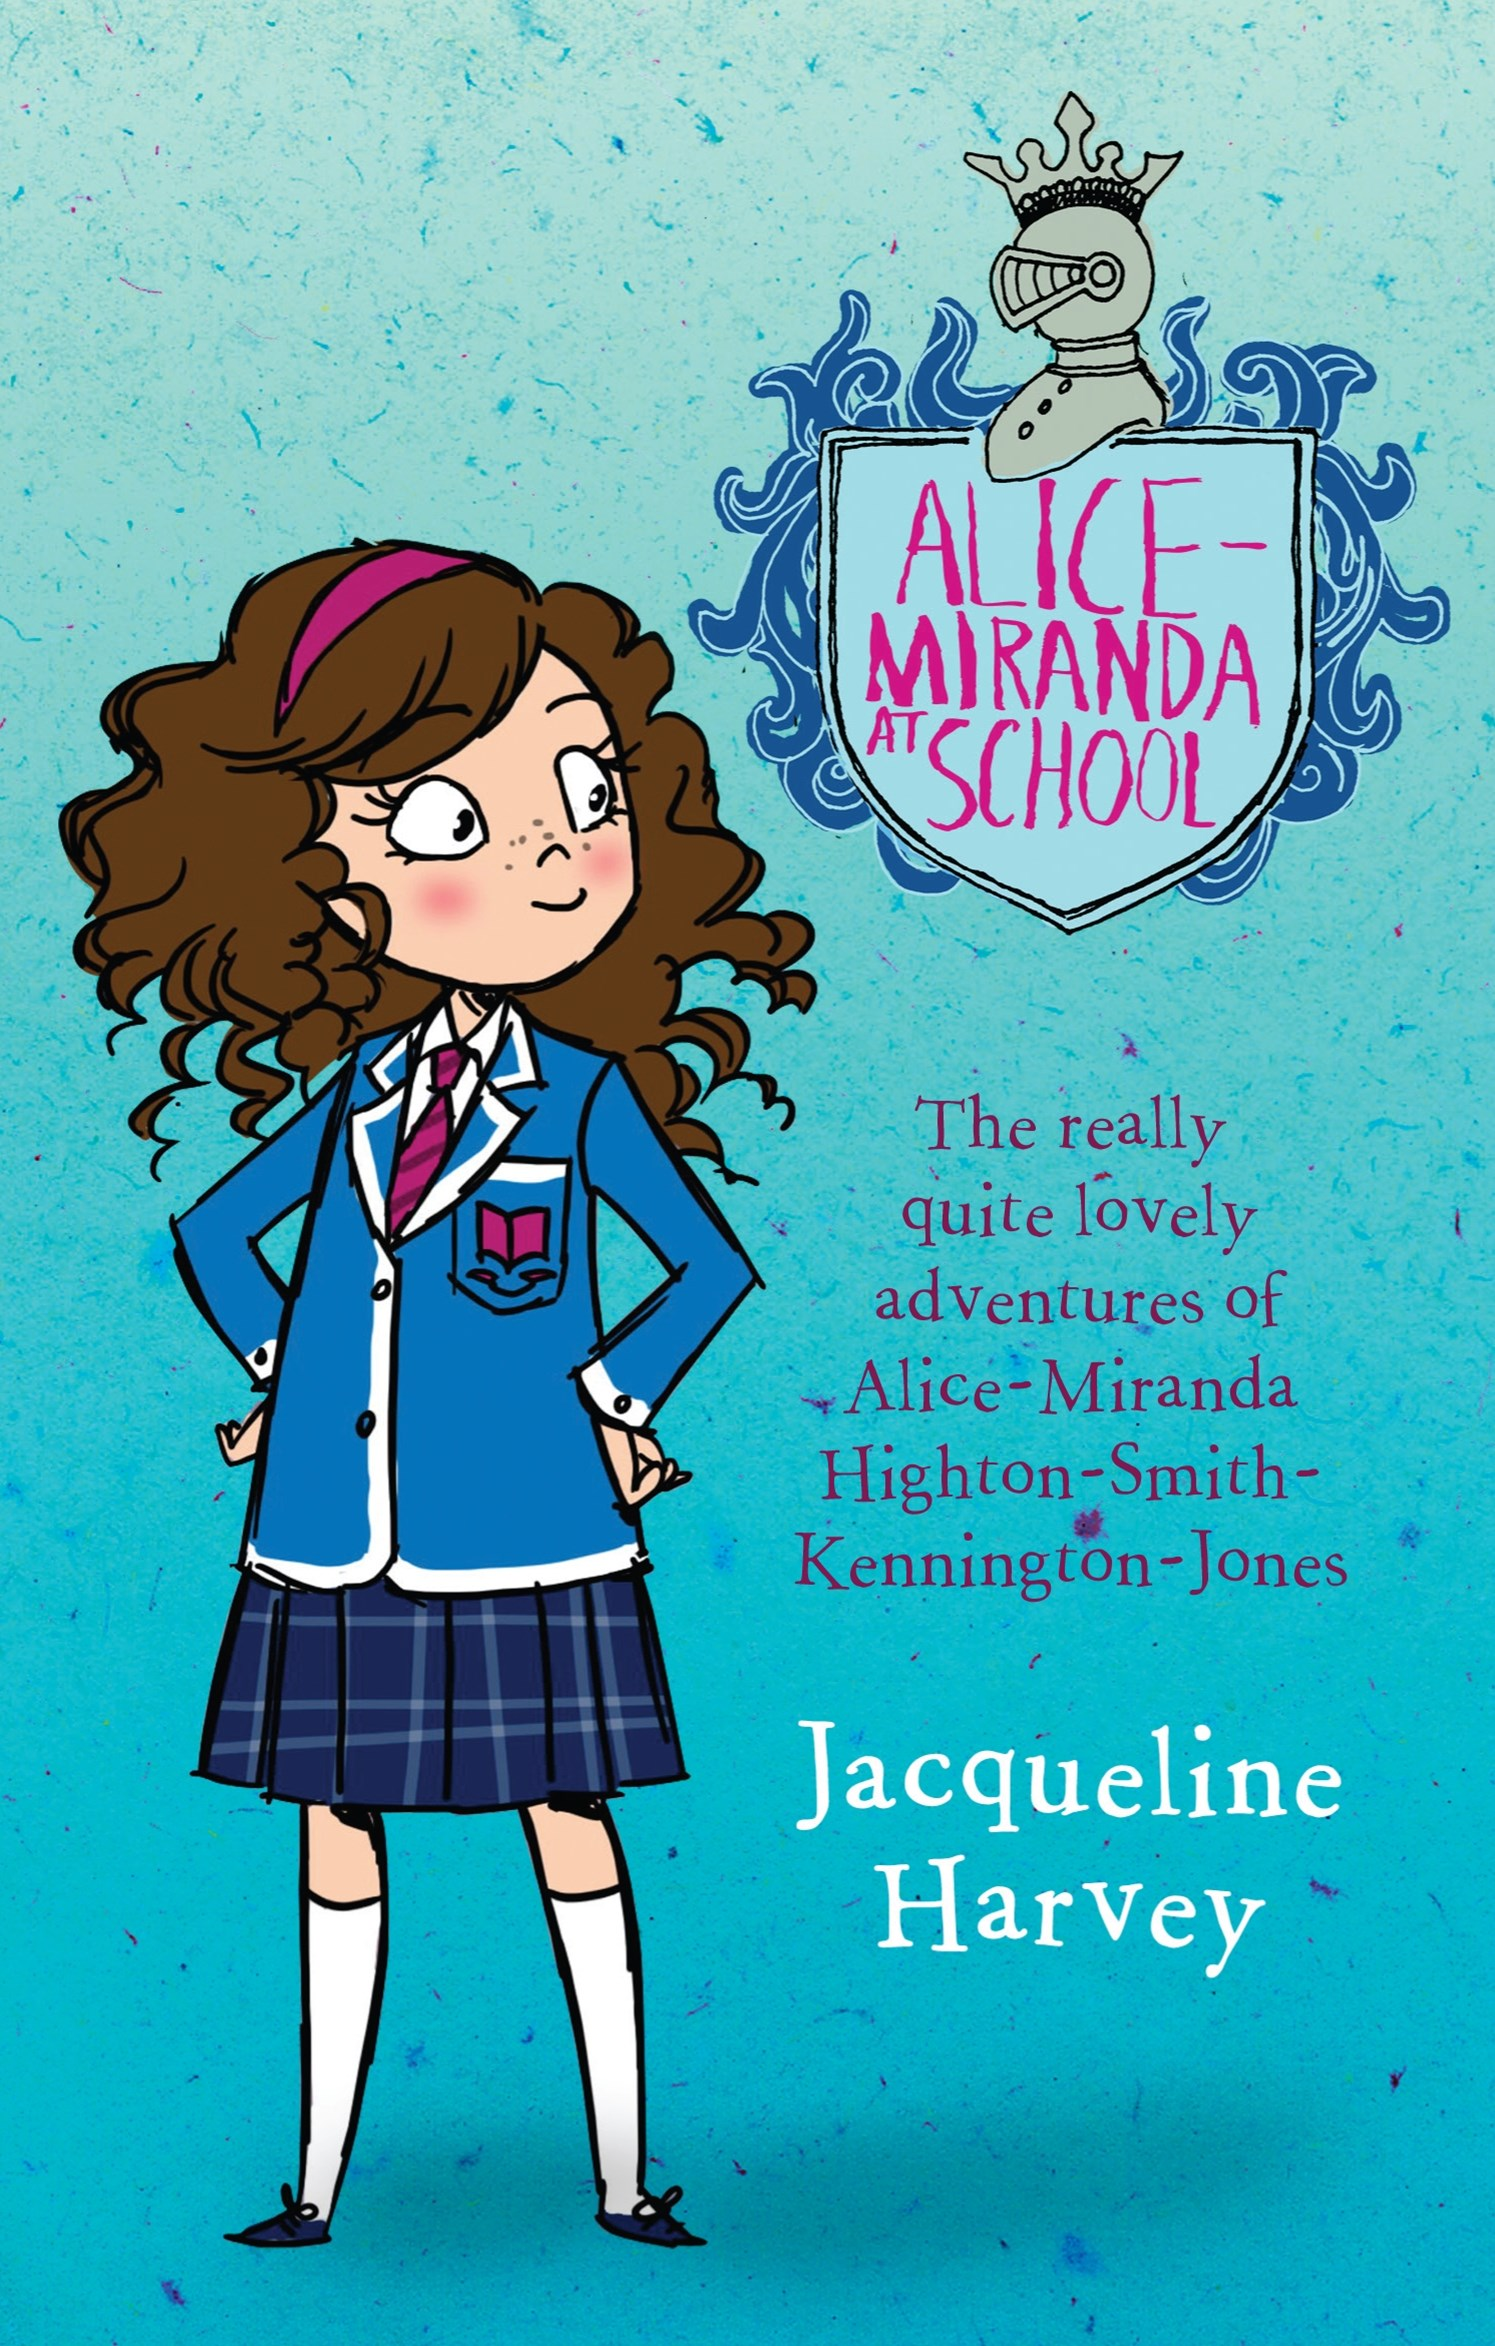 Alice-Miranda at School (Alice-Miranda Book 1)